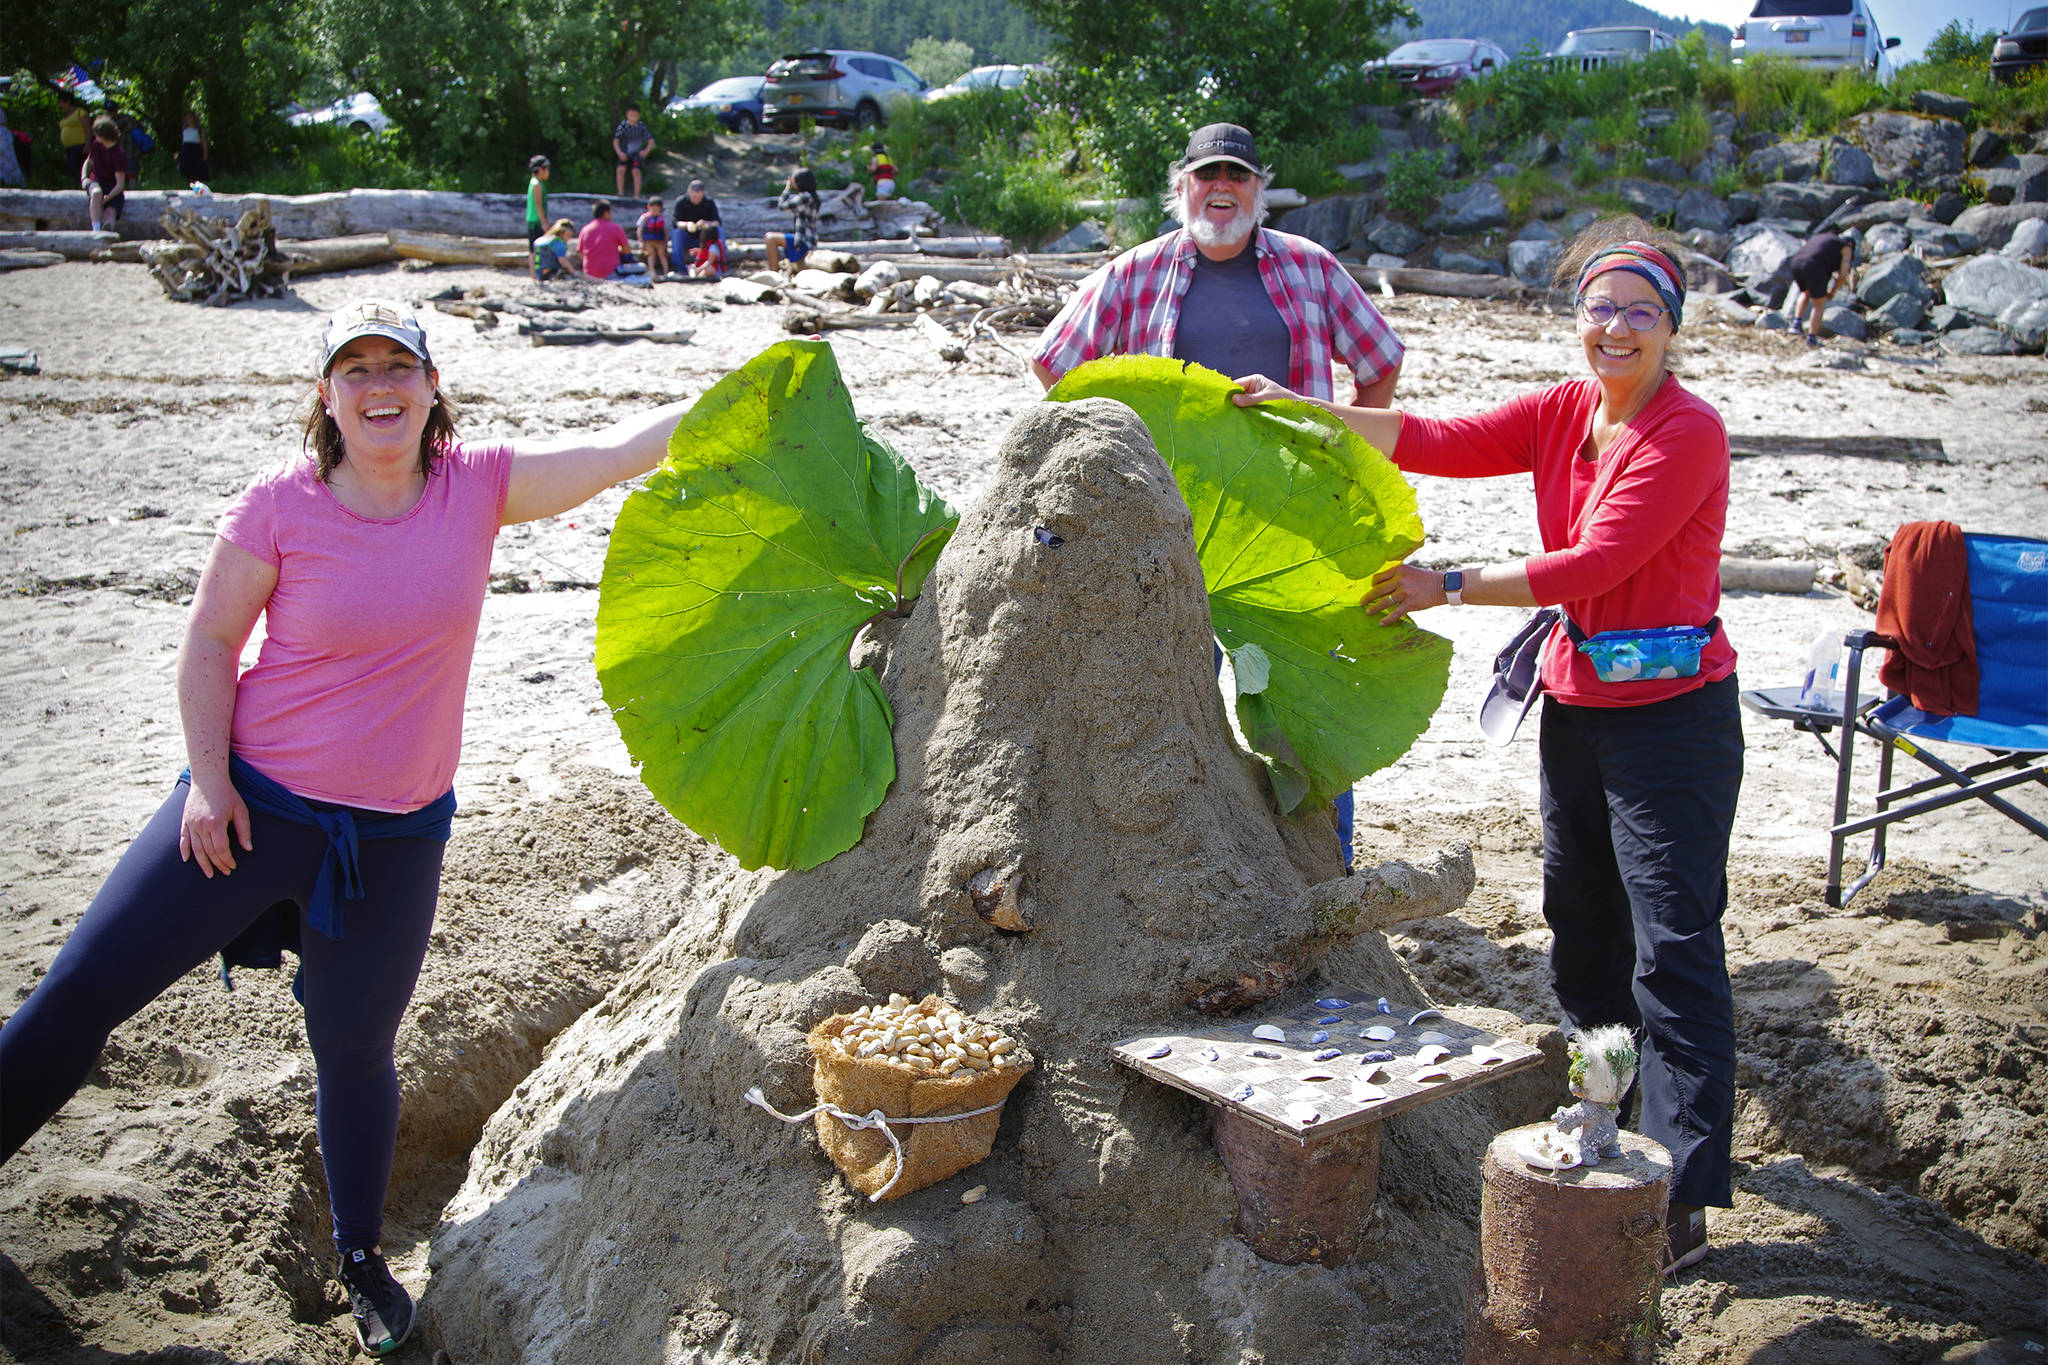 """Team Waldon Trolls shows off their sandcastle, """"Elephant Playing Checkers with a Troll,"""" which was awarded first place in the sandcastle competition sponsored by the Douglas Fourth of July committee on July 4, 2021. (Courtesy photo/Zane Jones)"""